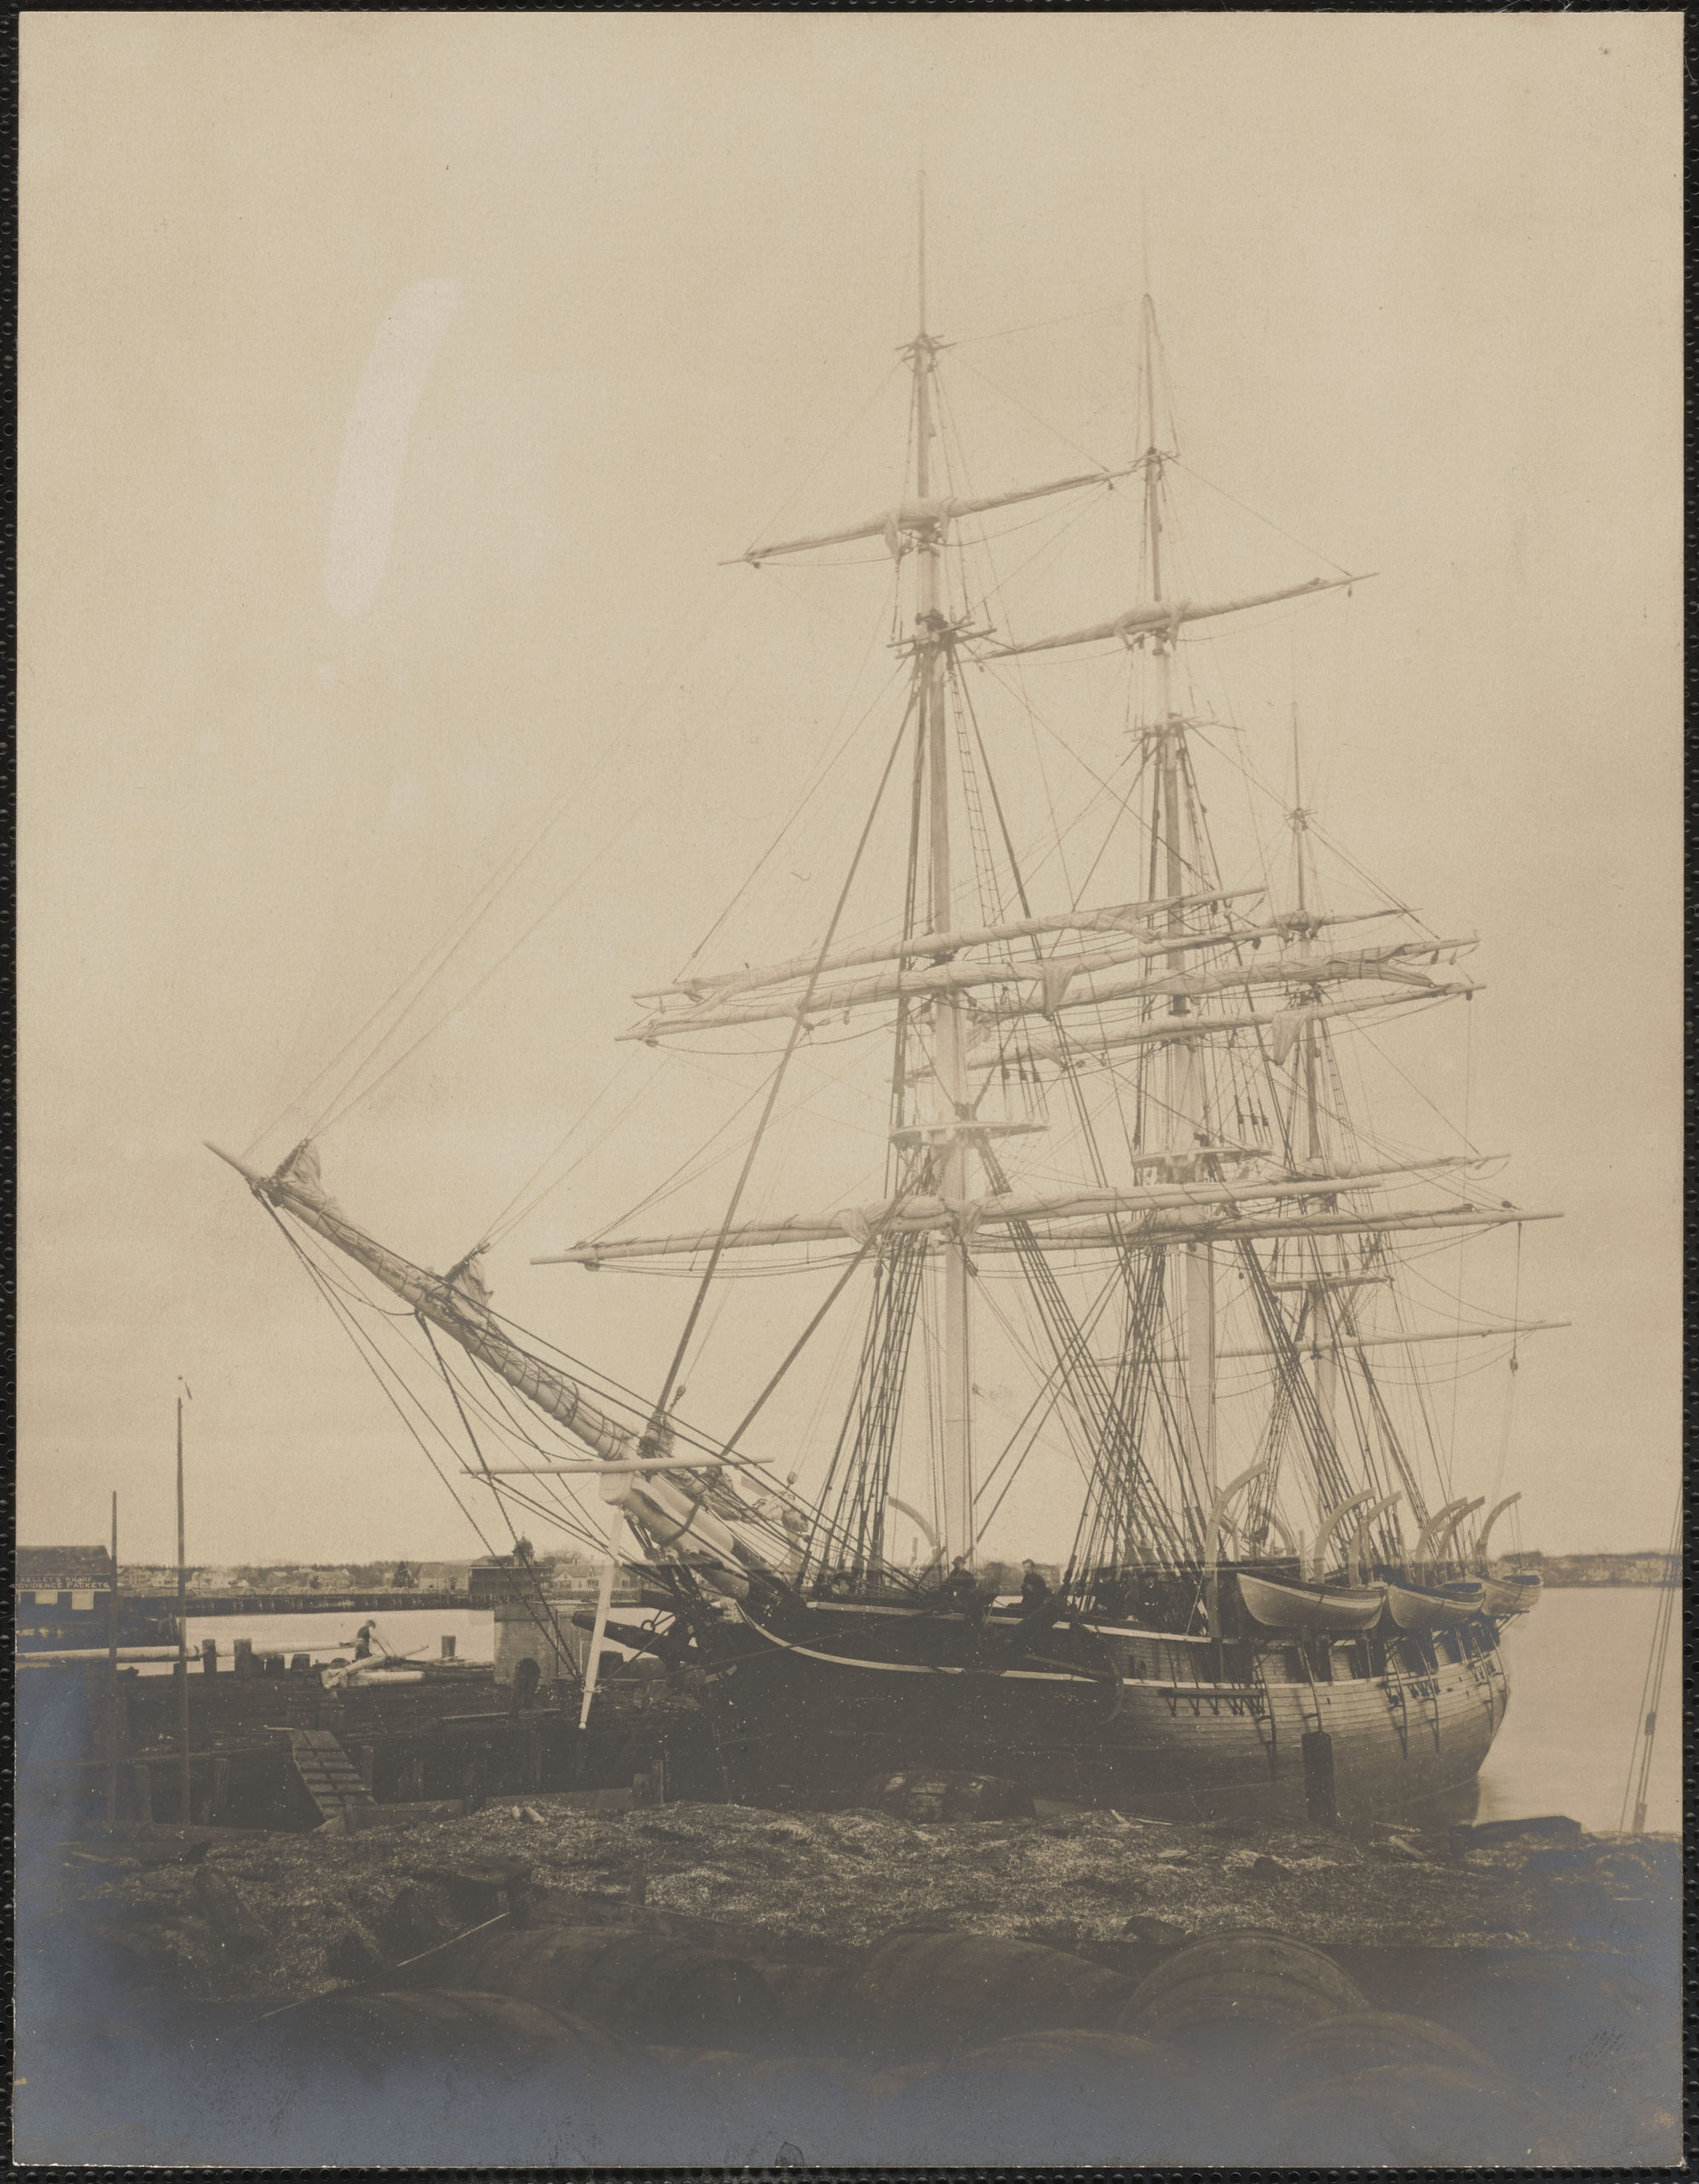 A photograph of whaling ship Young Phoenix shown fully rigged at dock in New Bedford harbor. Seaweed and whale oil barrels in foreground.    Courtesy of the Trustees of the New Bedford Free Public Library, Joseph G. Tirrell Photograph Collection